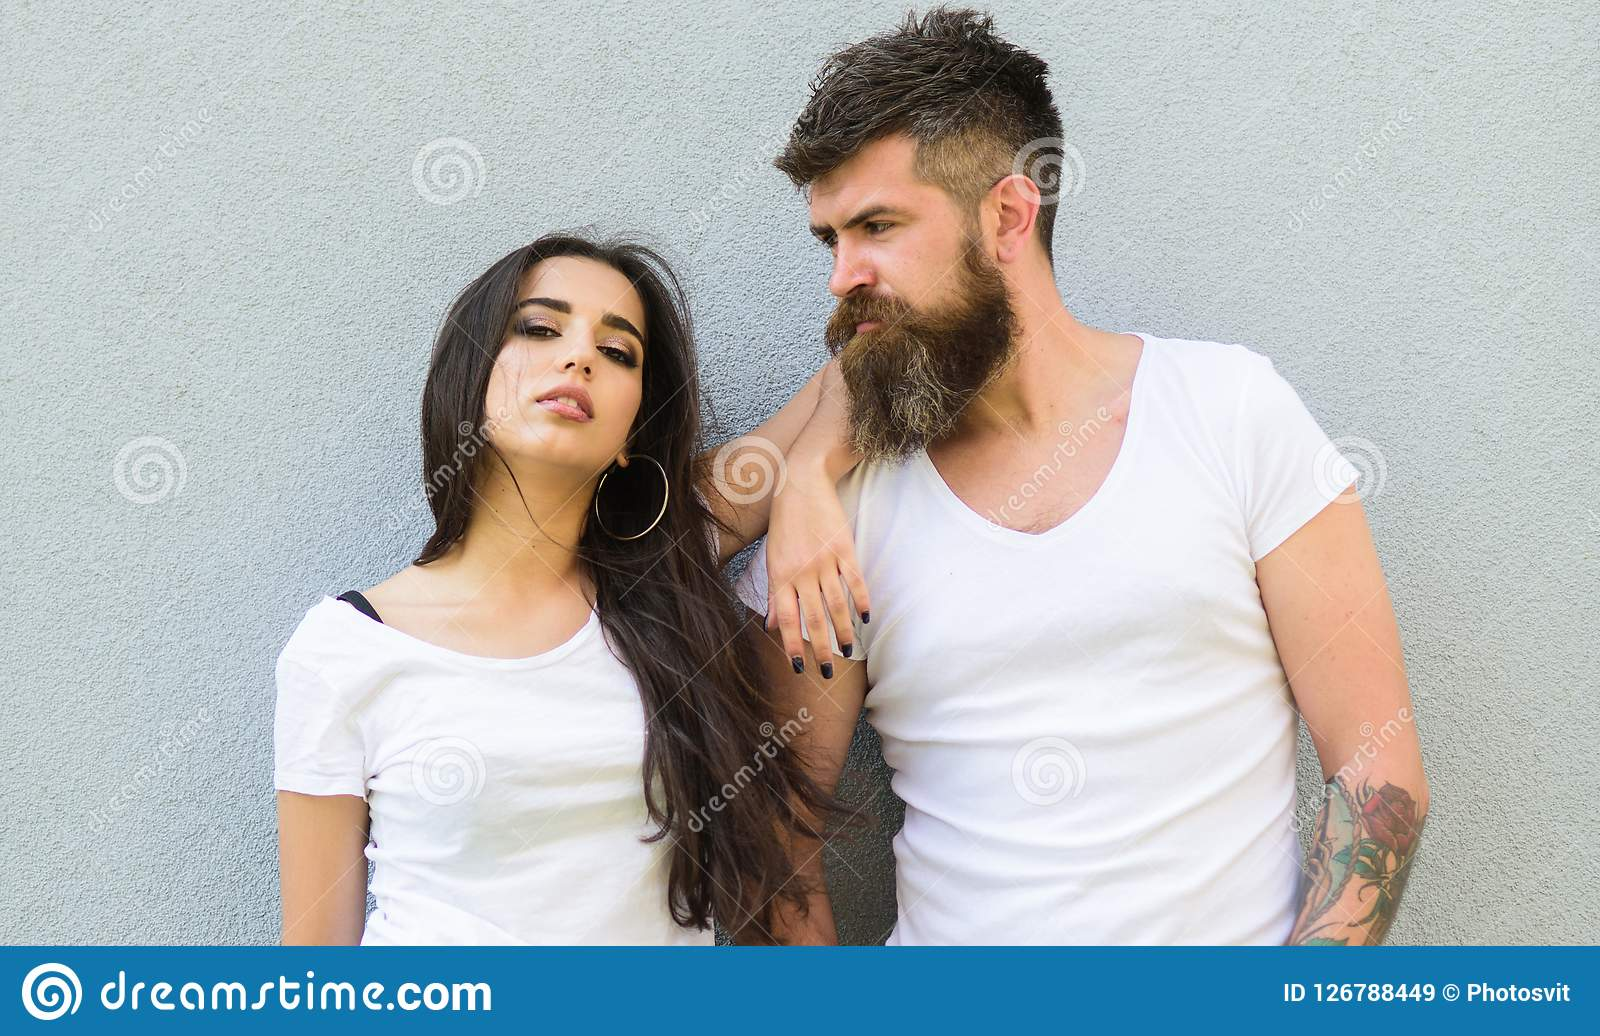 Feel their style couple white shirts cuddle each other hipster bearded and stylish girl